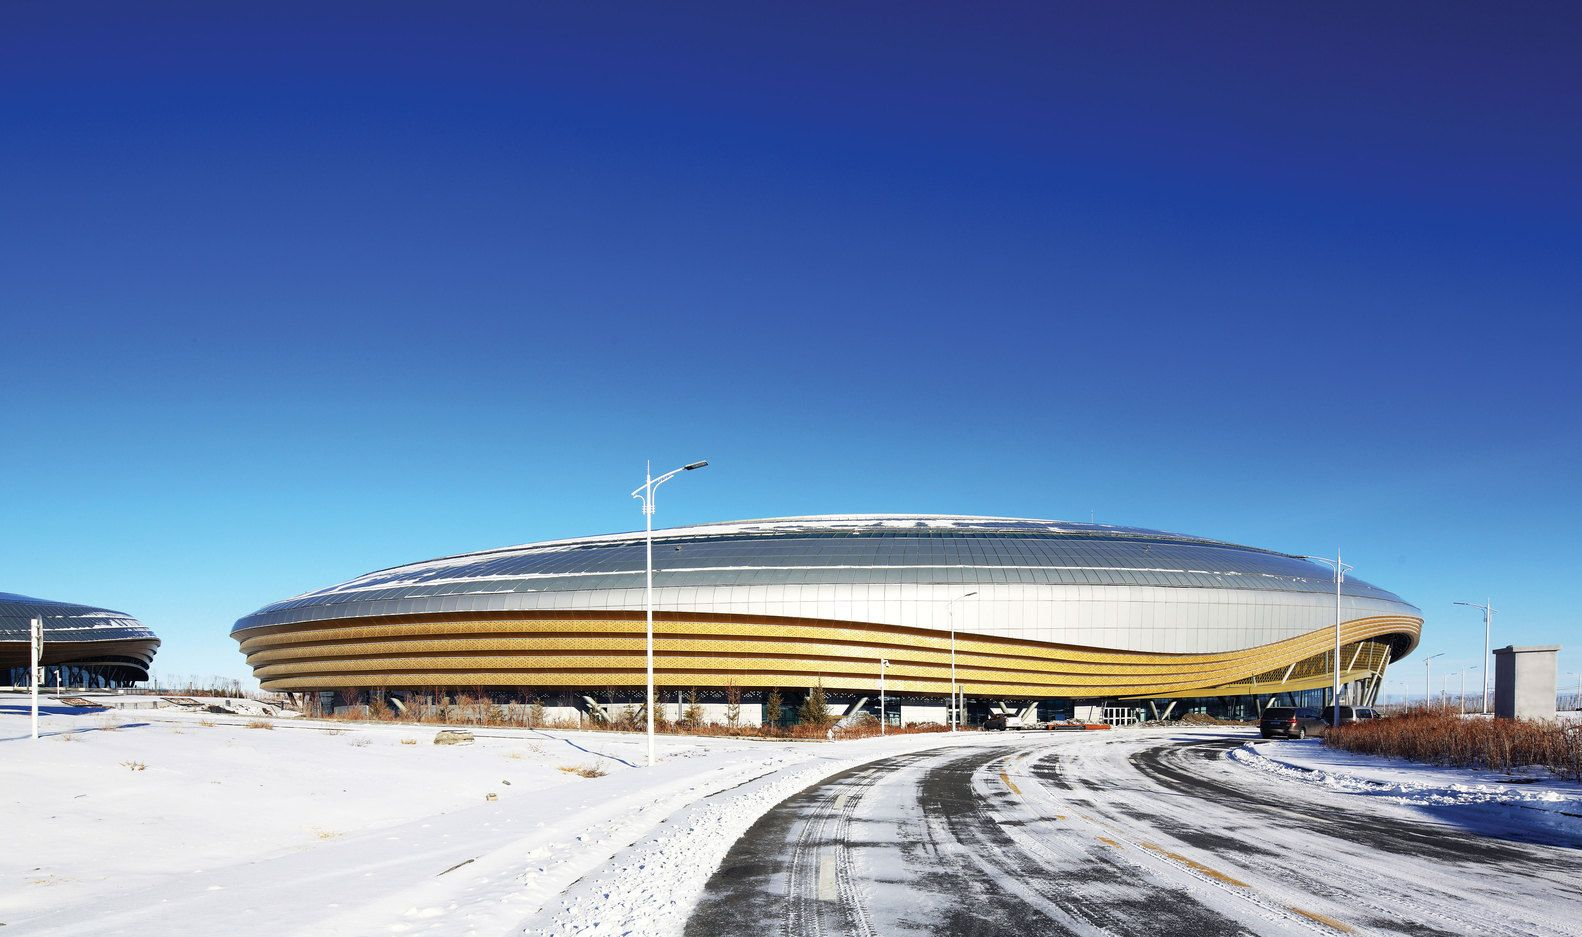 Gallery of Ice Sports Center of the 13th China National